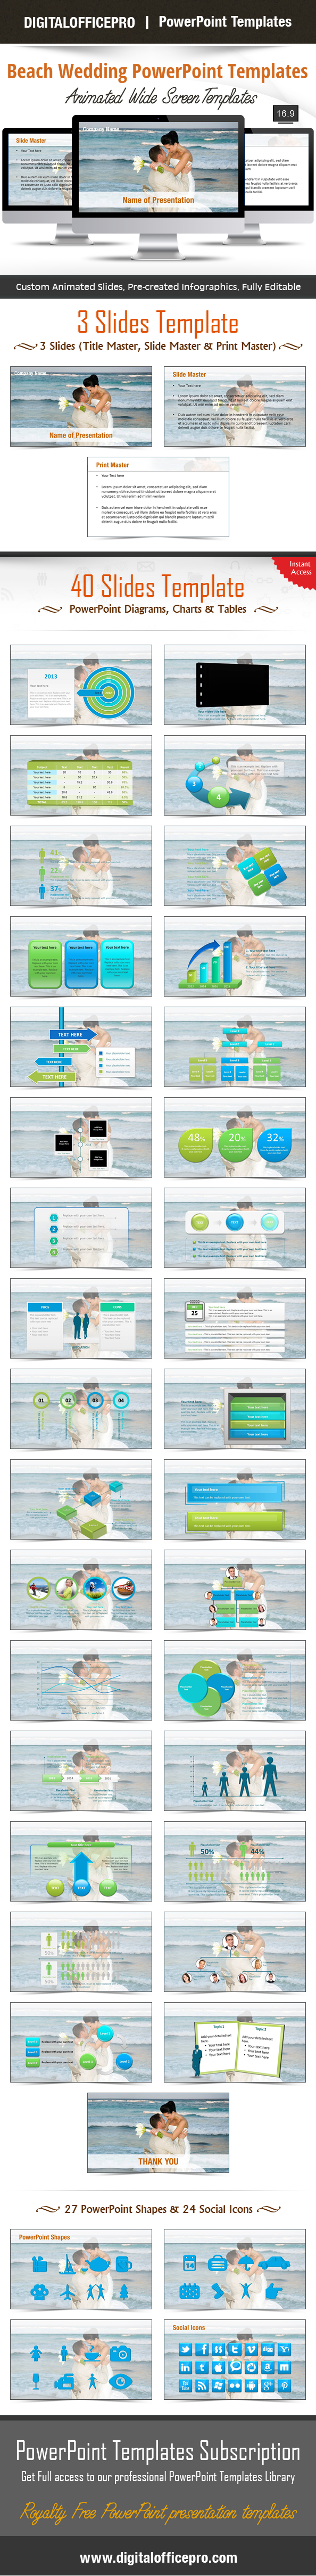 Beach Wedding Powerpoint Template Backgrounds